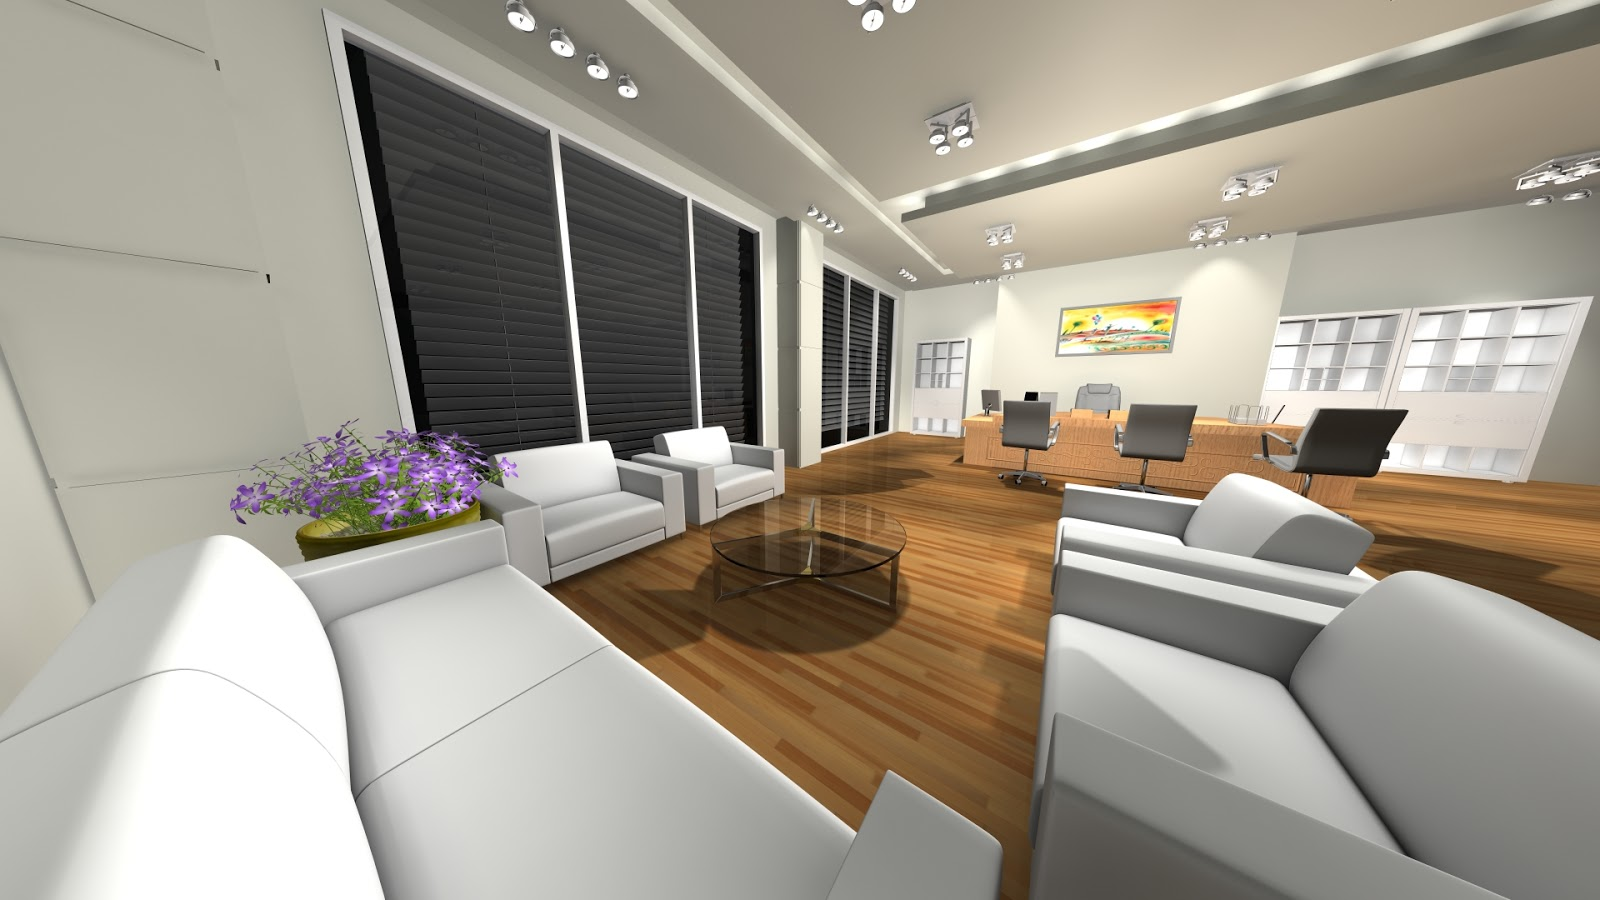 Sajid designer office room 3d interior design 3ds max for Internal design